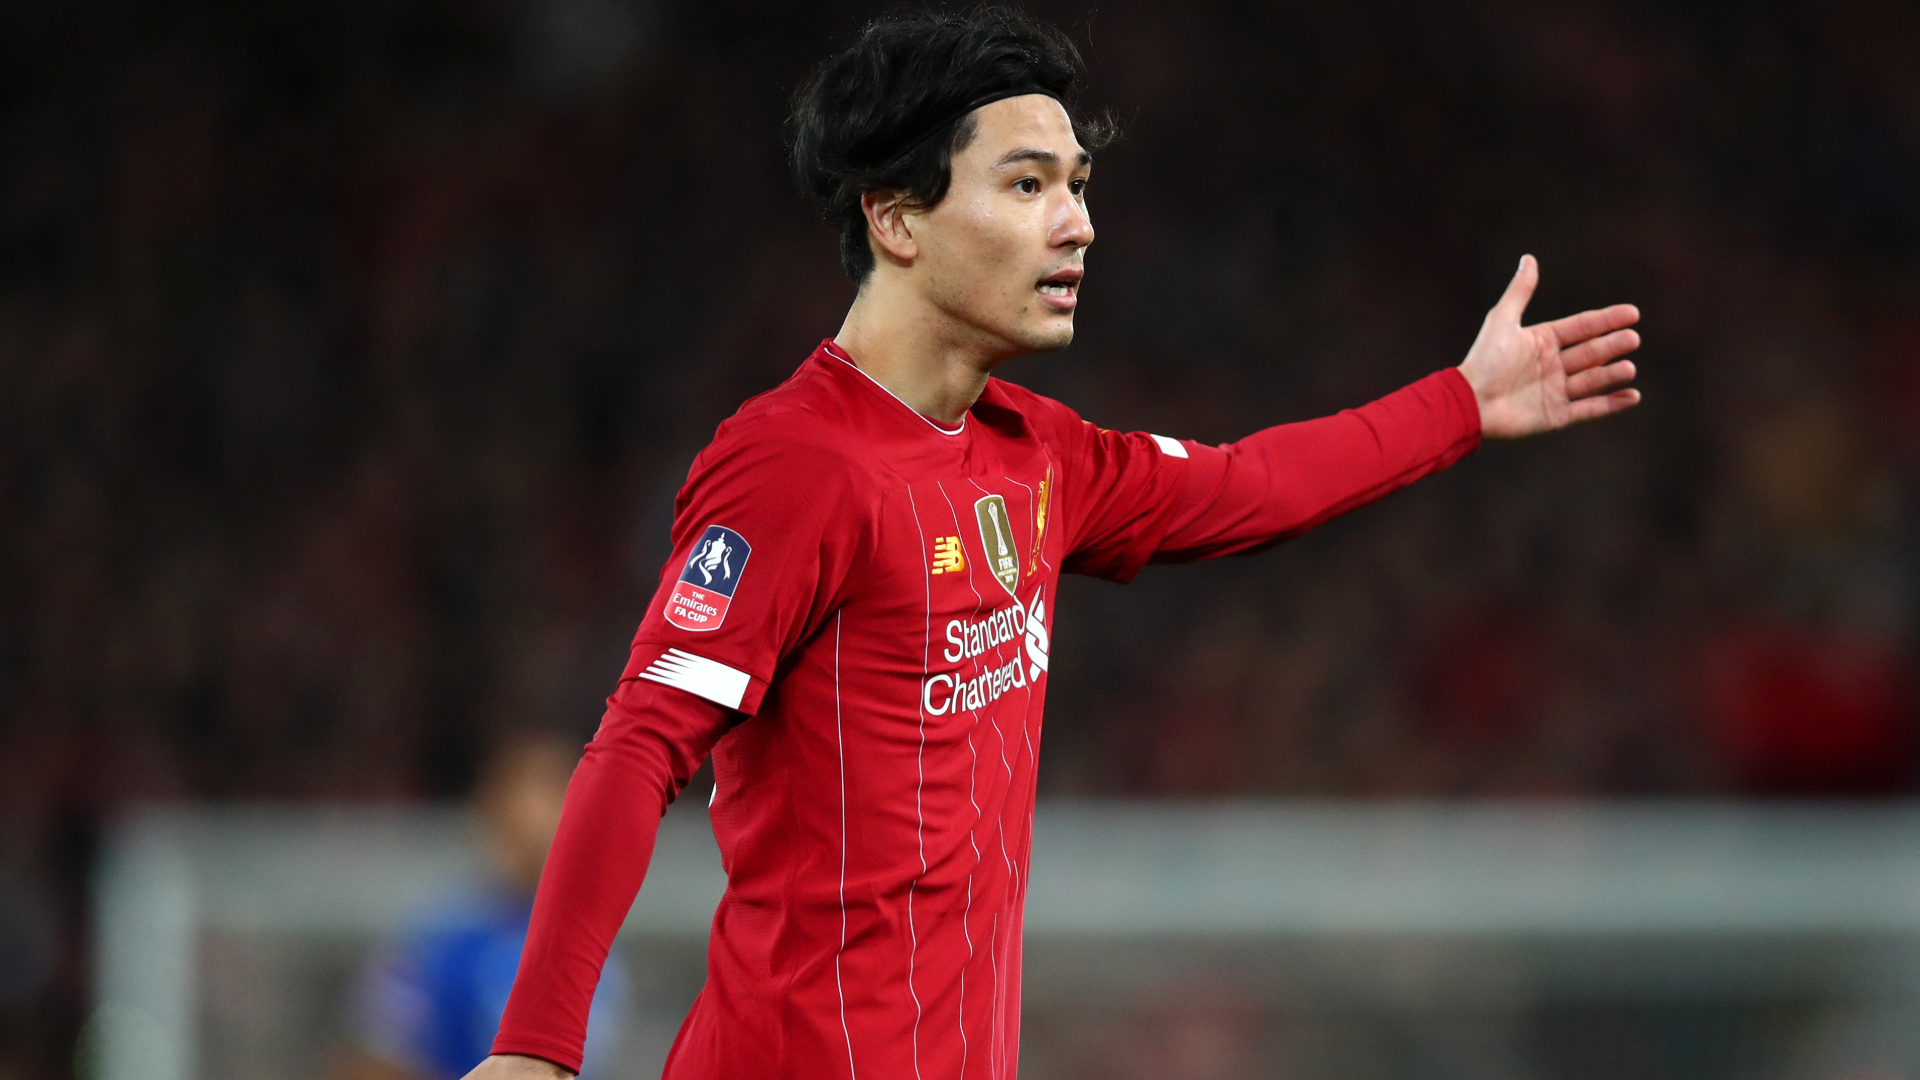 'One of the most intense matches I've ever played' - Minamino revels in making Liverpool debut